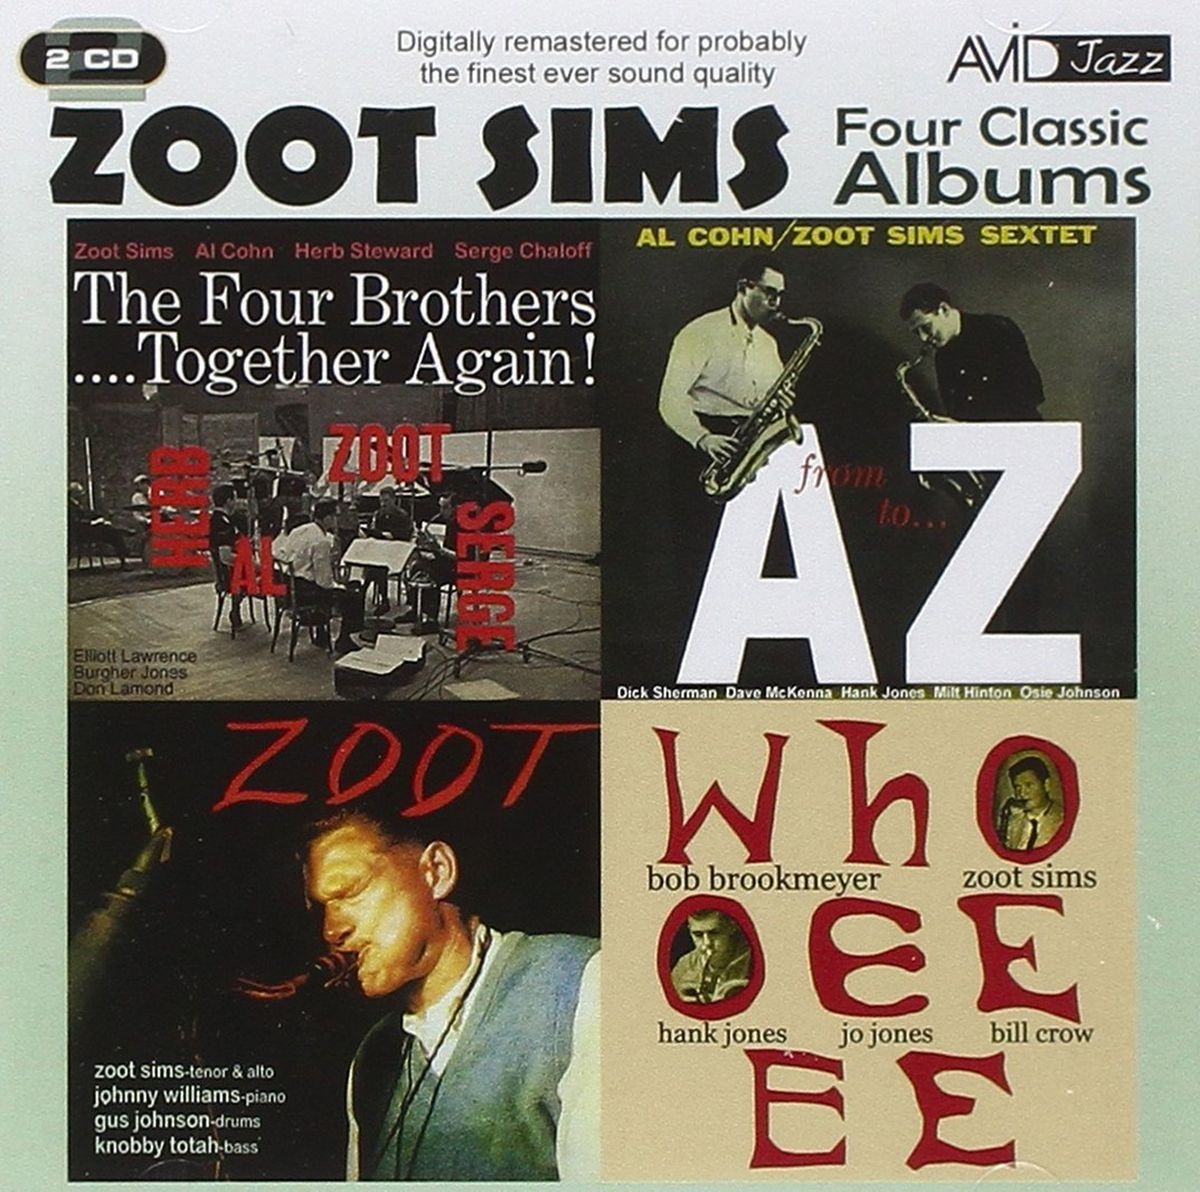 Zoot Sims. Sims - Four Classic Albums (2 CD)